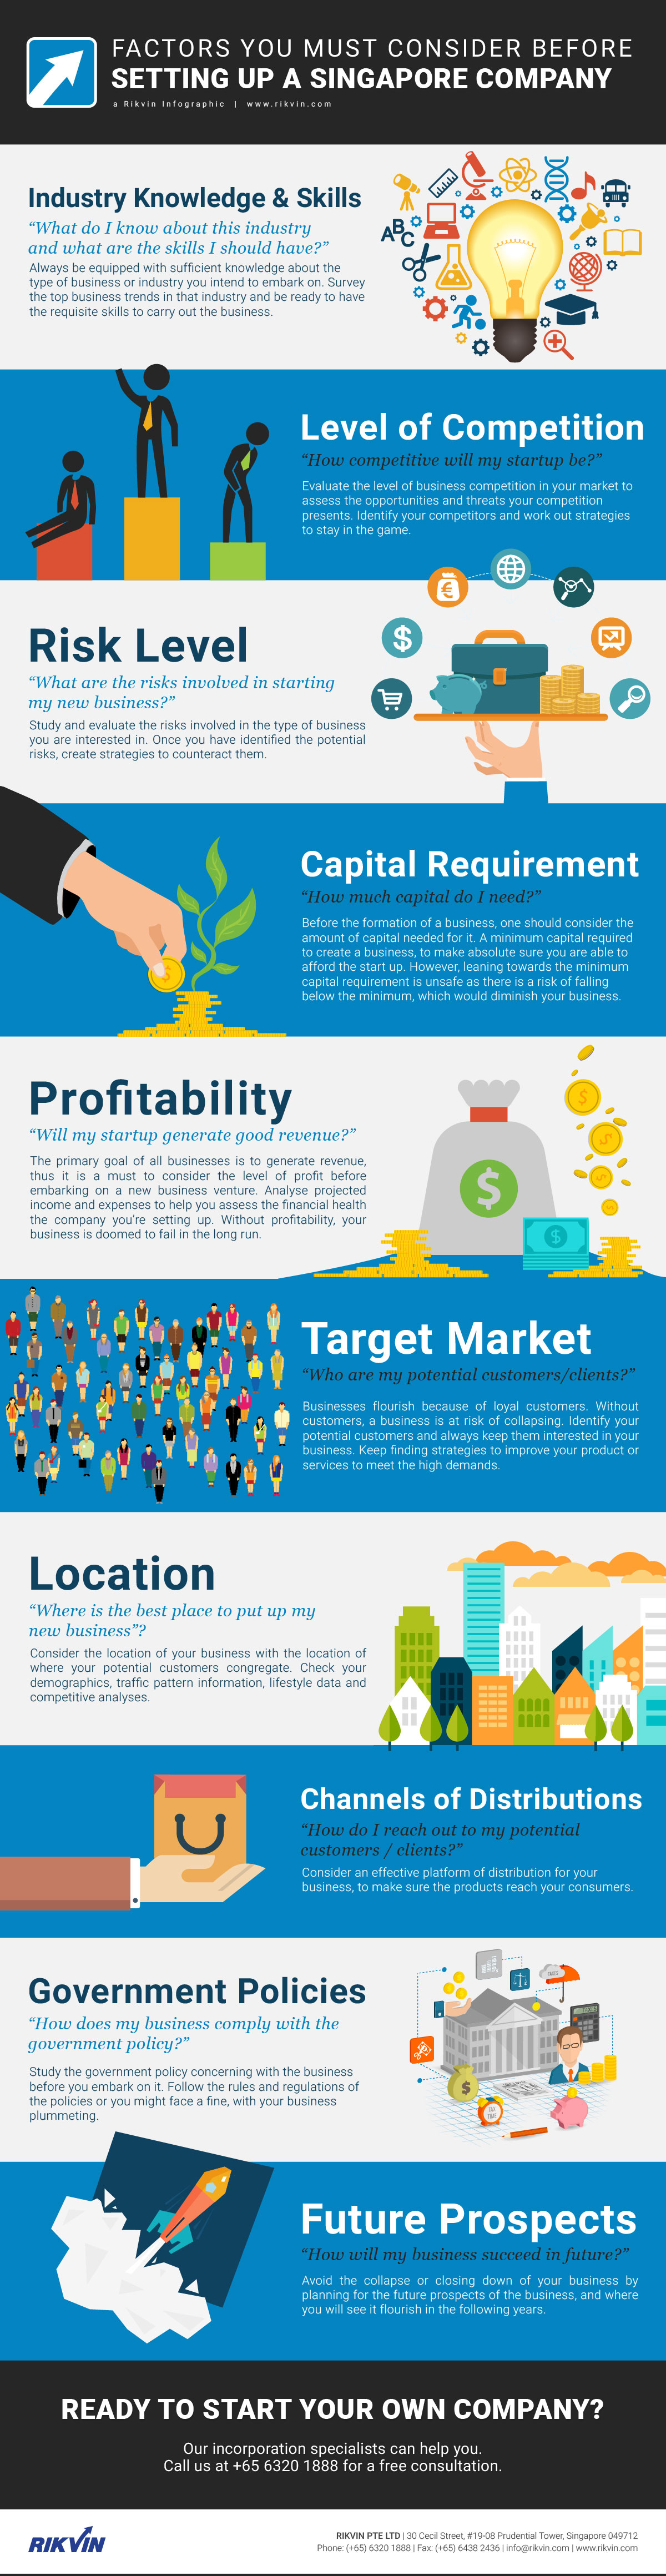 Factors-That-Must-Be-Considered-Before-Starting-a-Business-Rikvin-Infographic Factors You Must Consider Before Setting Up a Singapore Company